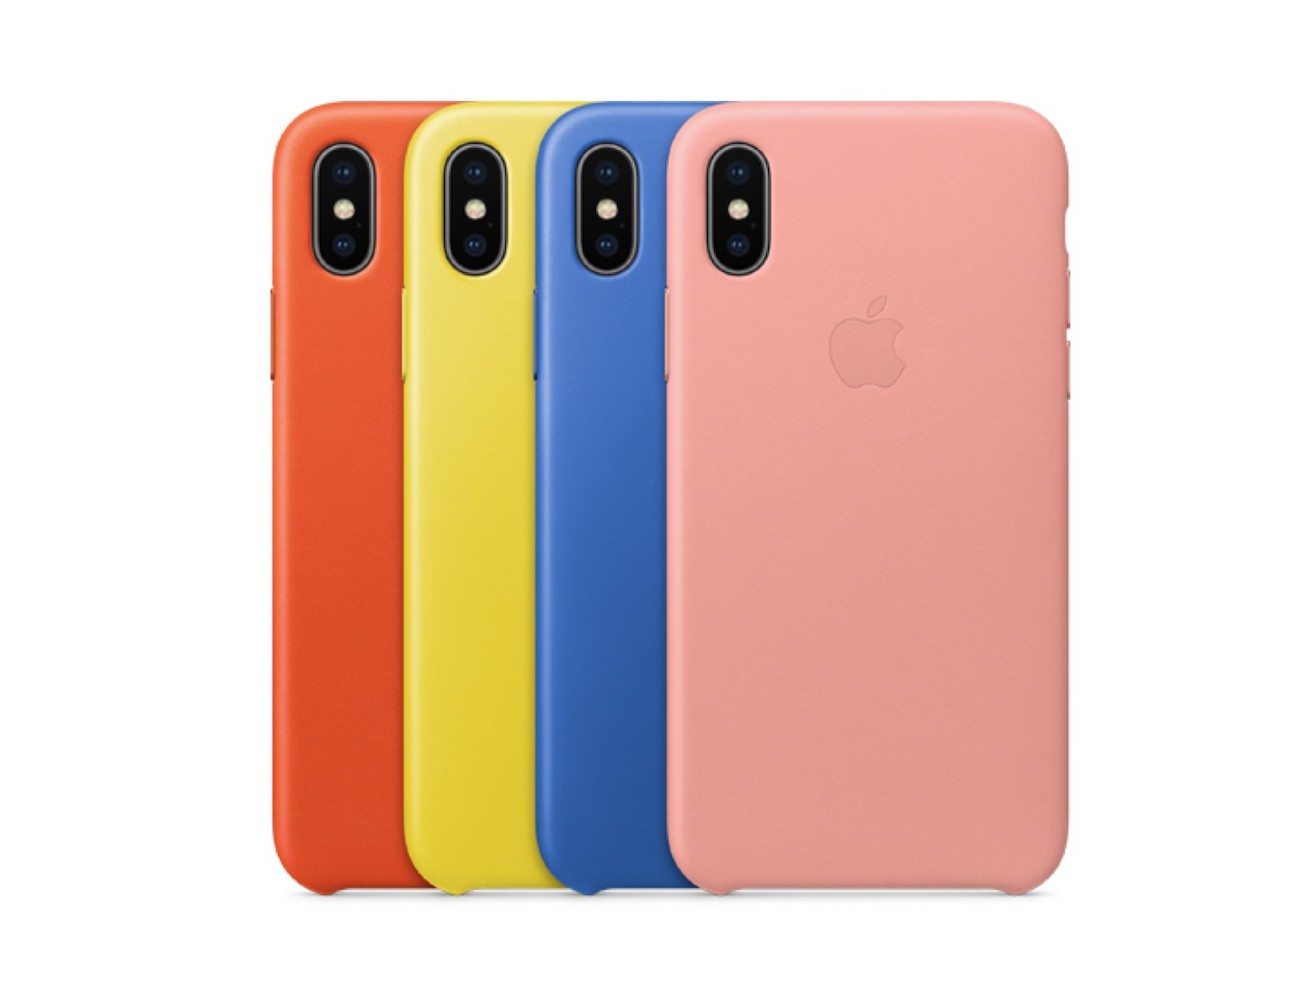 Apple Spring Color iPhone Cases add a bright spark to your EDC